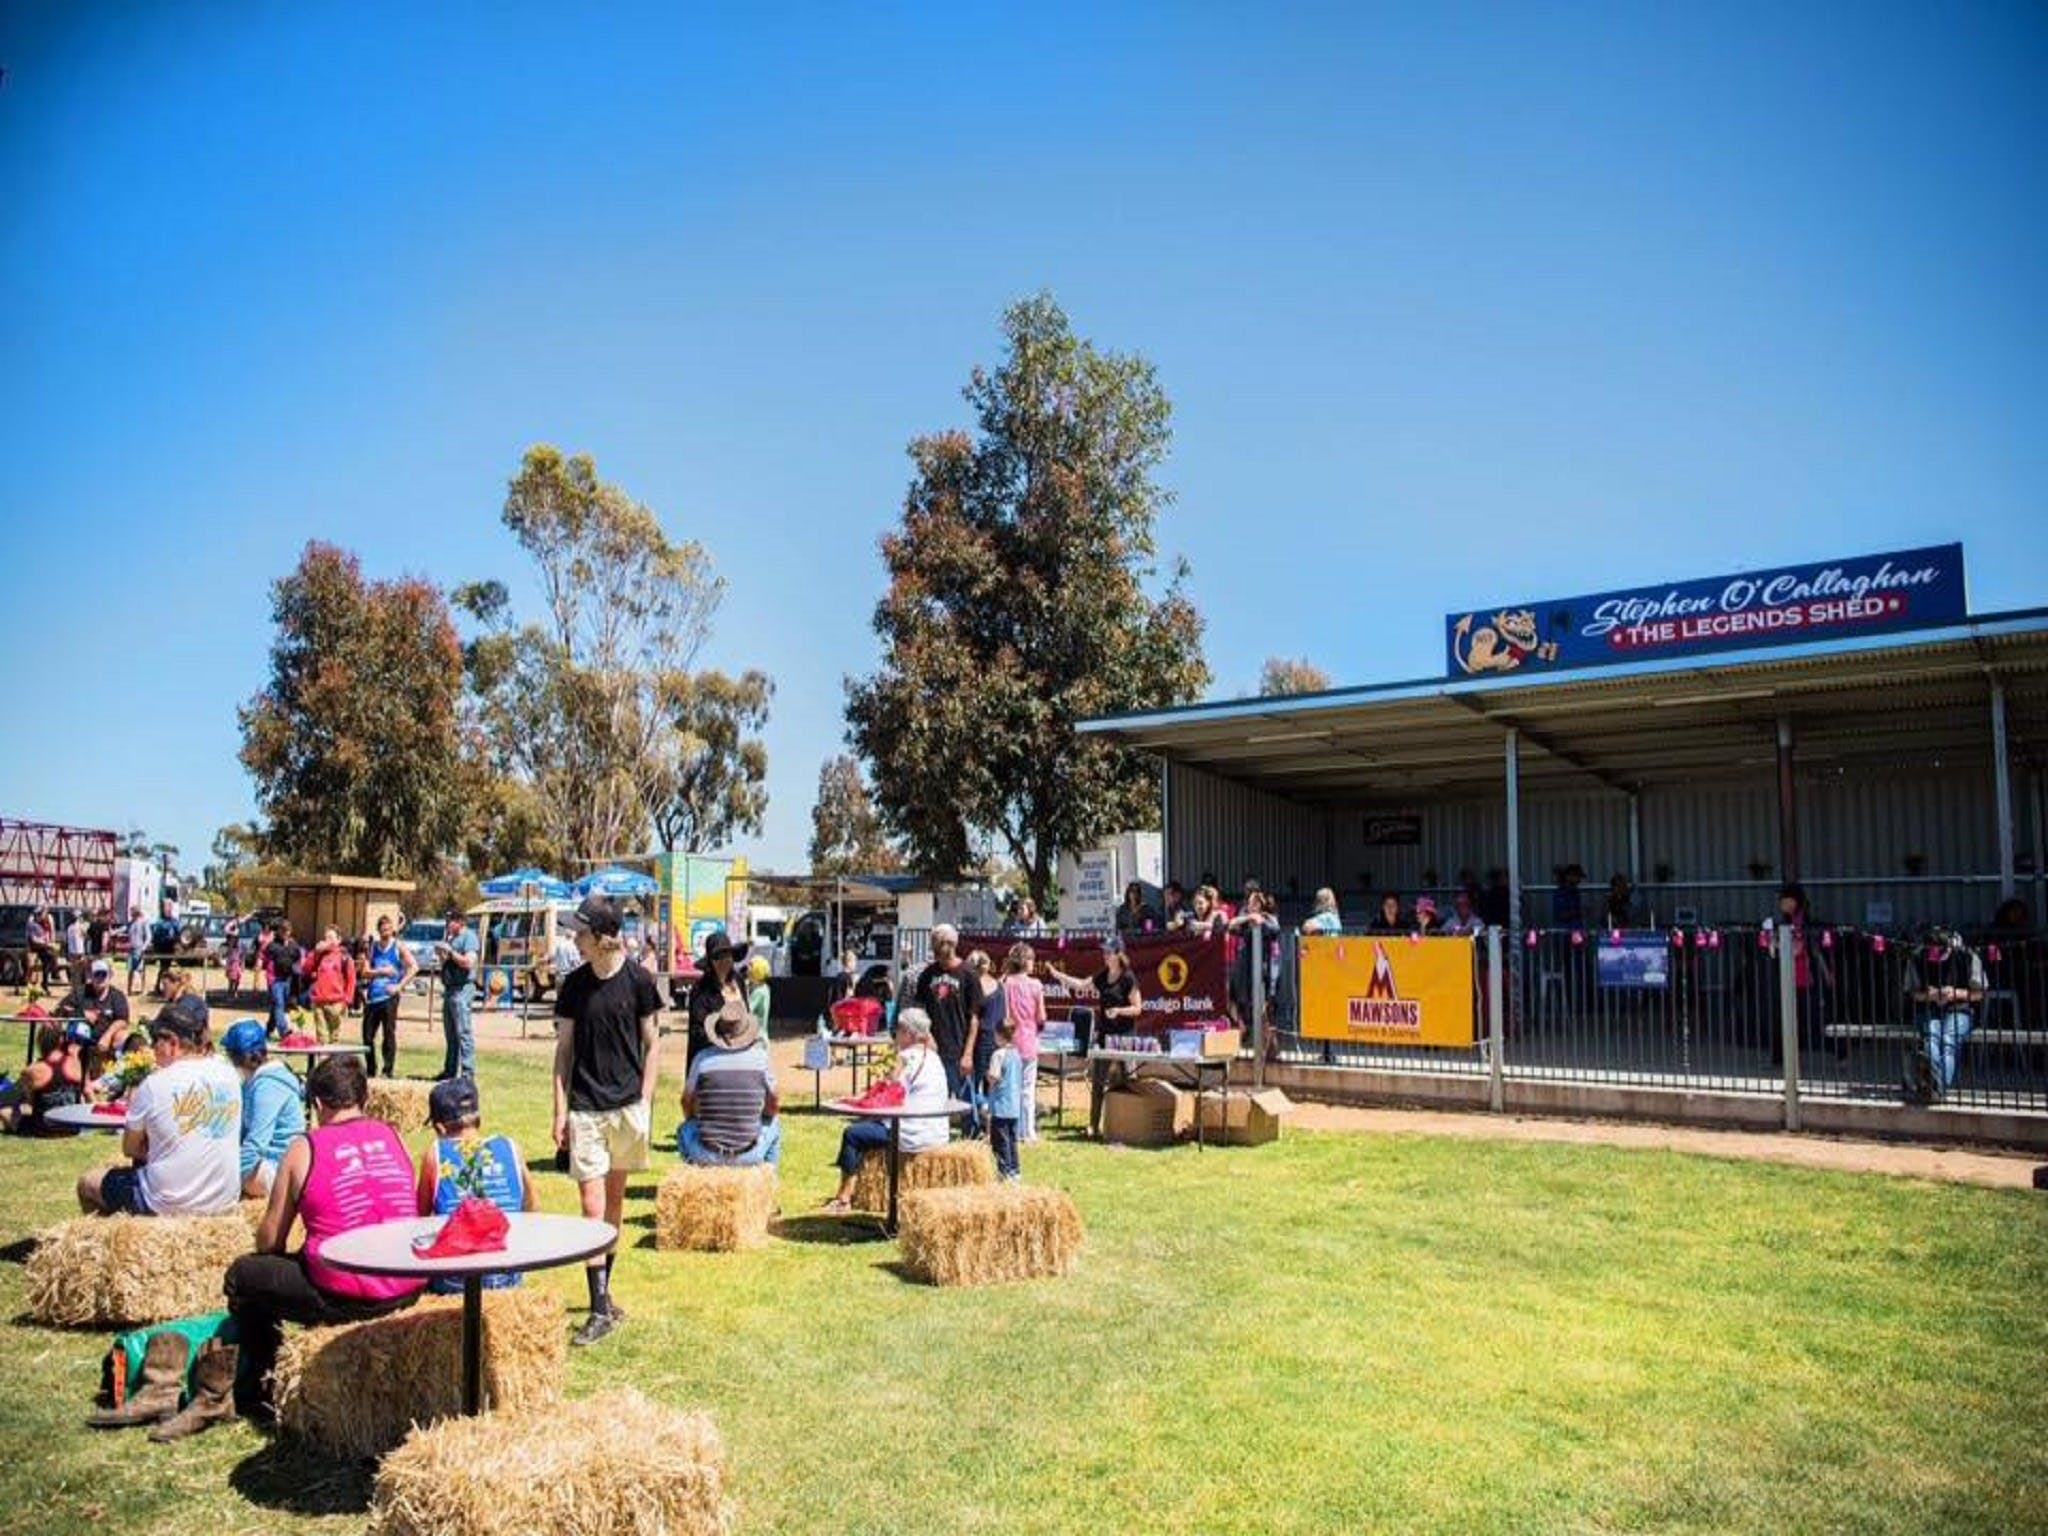 Mathoura Speed Shear and Annual Cancer Fundraiser - Sunshine Coast Tourism